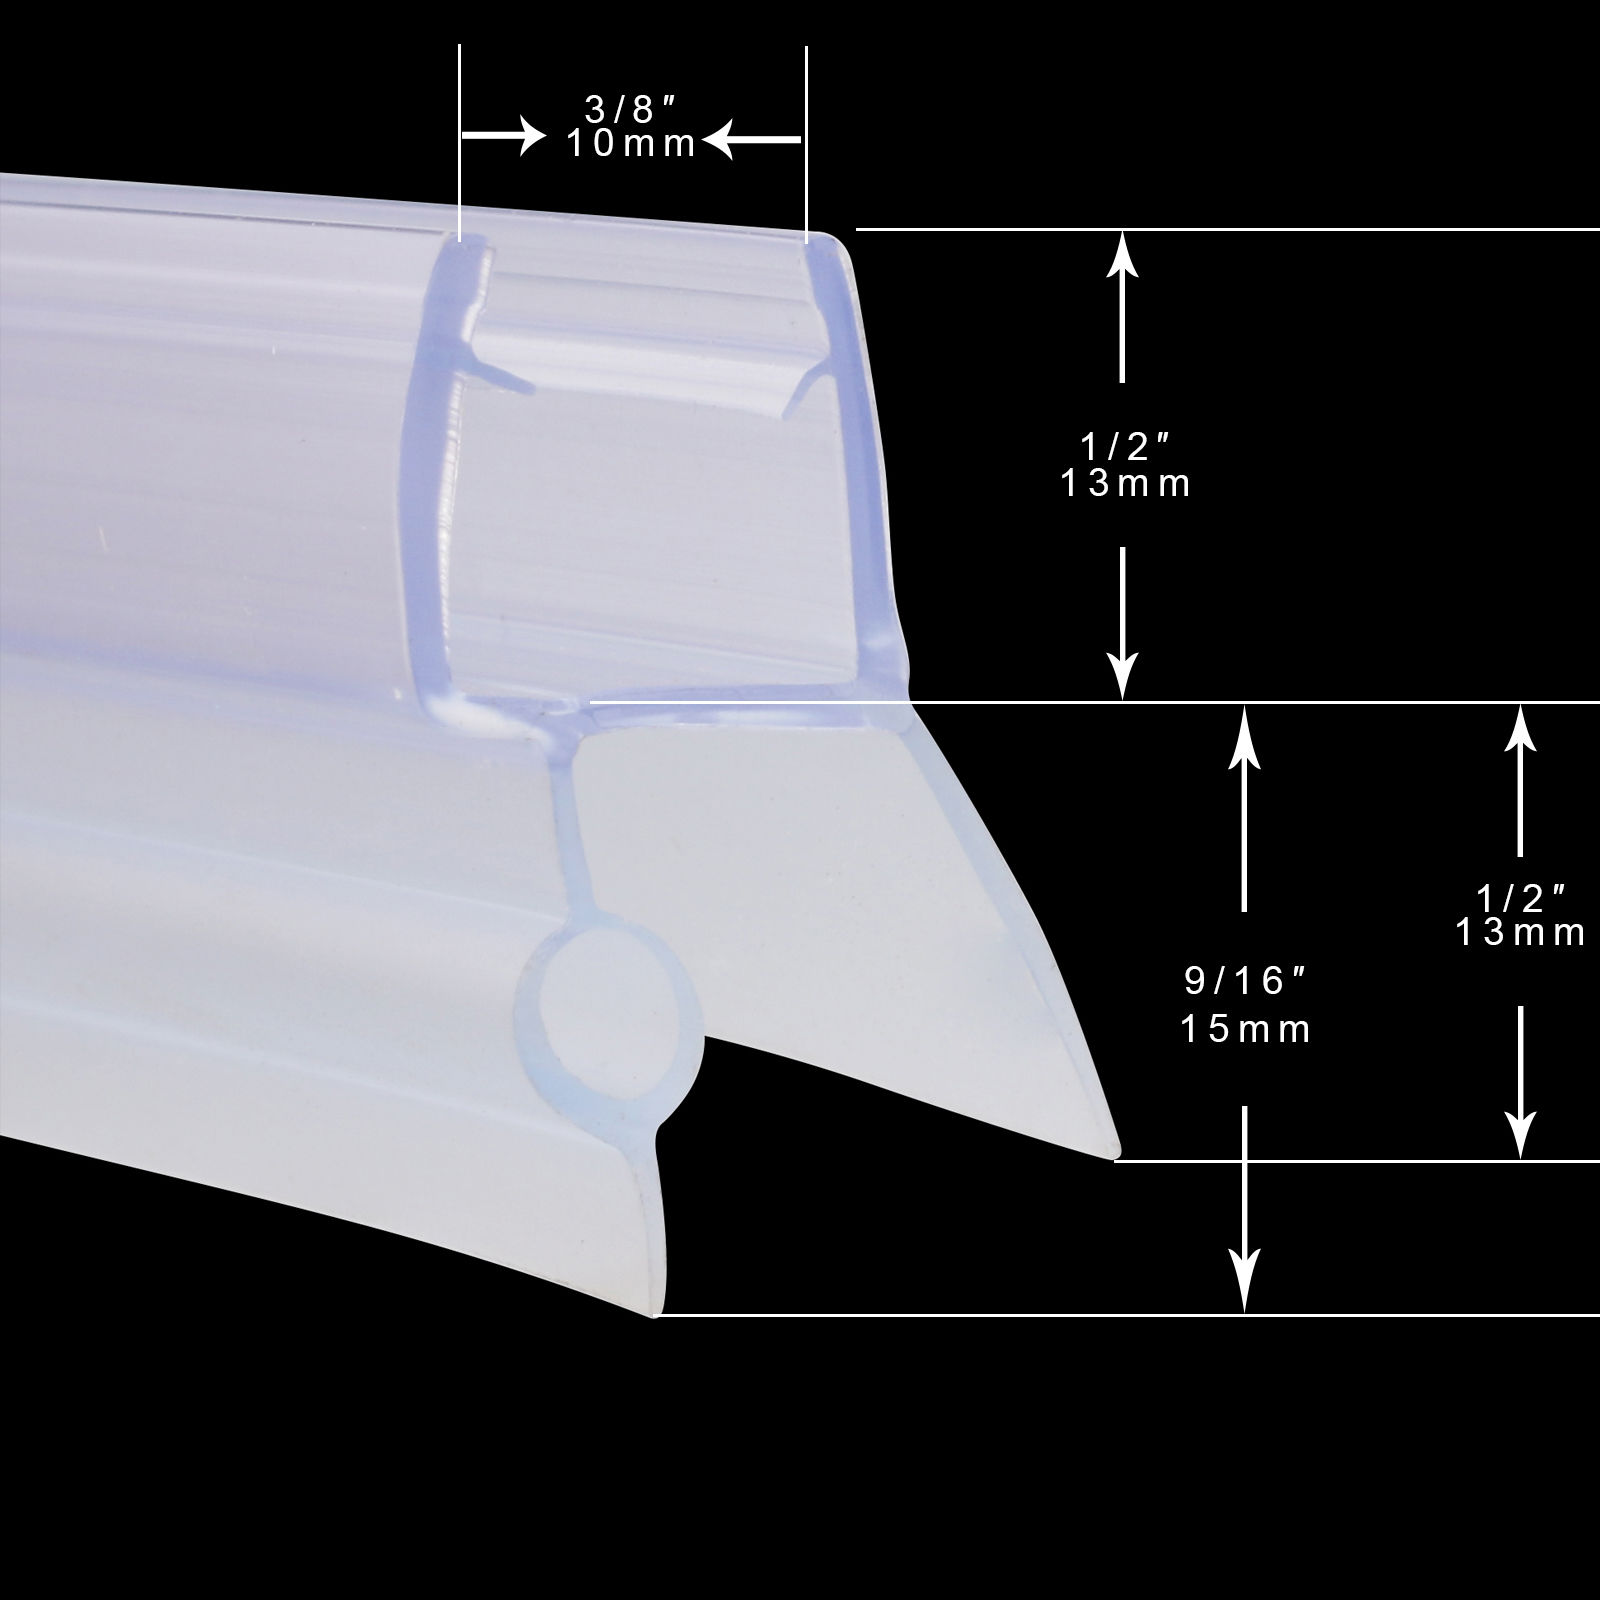 Details About Sunny Shower Door Seal Strip For 3 8 Inch Glass Shower Door Bottom Seal 36 In L